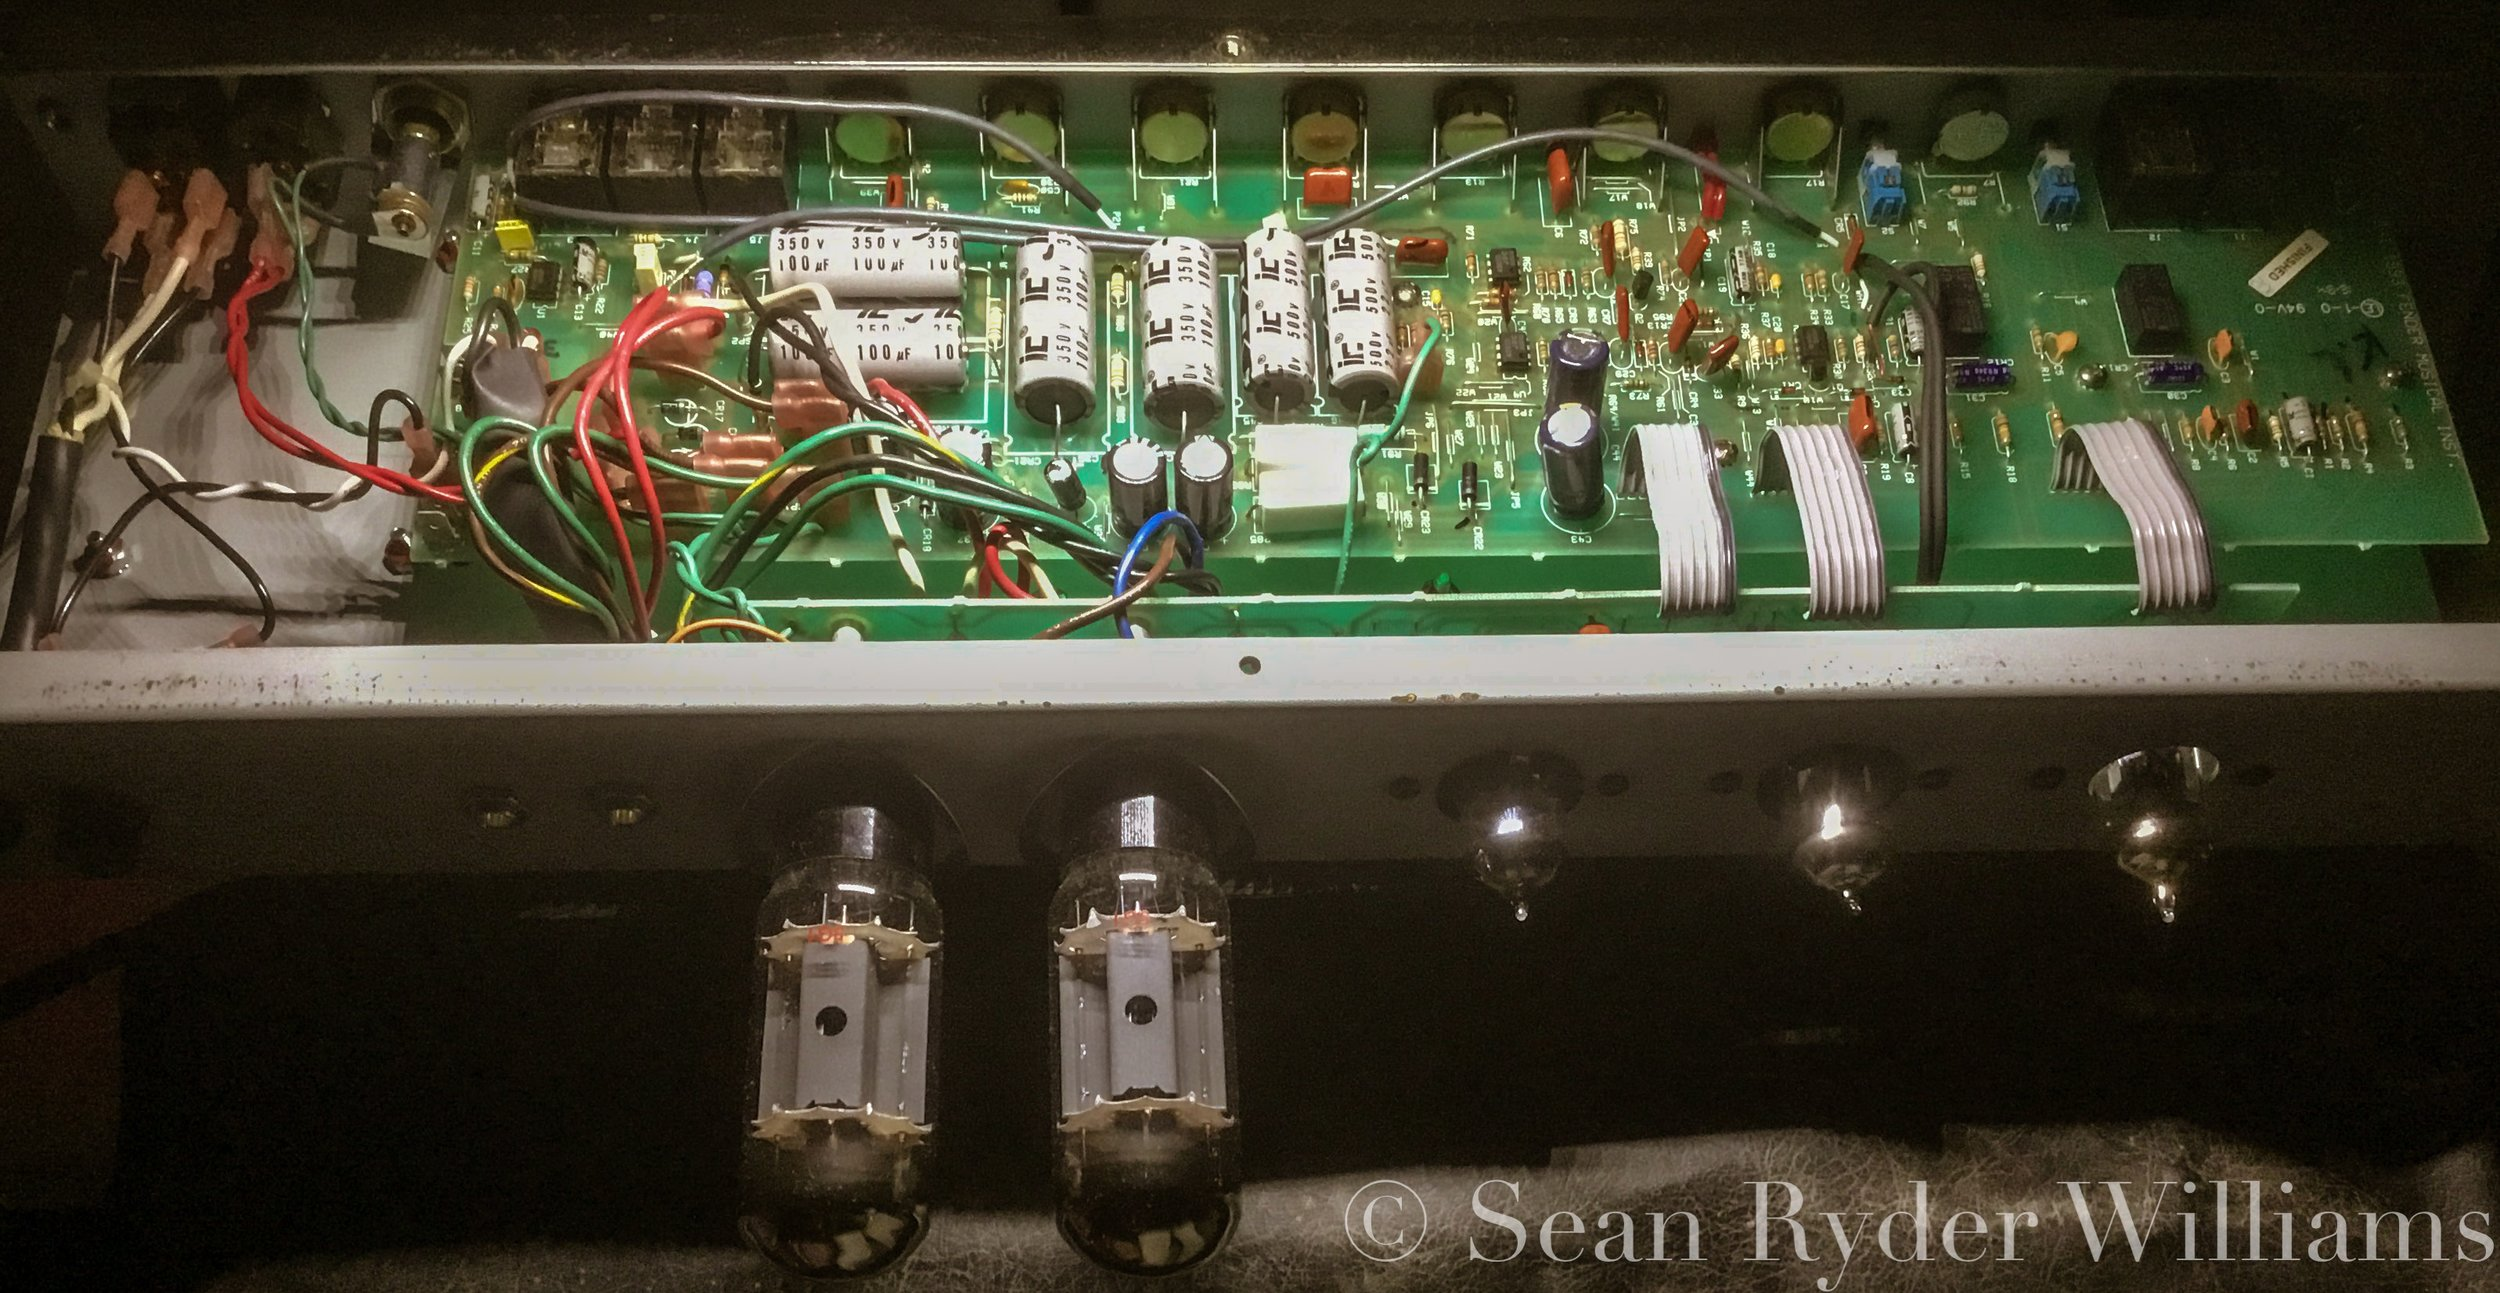 Fender Blues Deville - Damn PCB meets Tubes - Troubleshooting Fun…